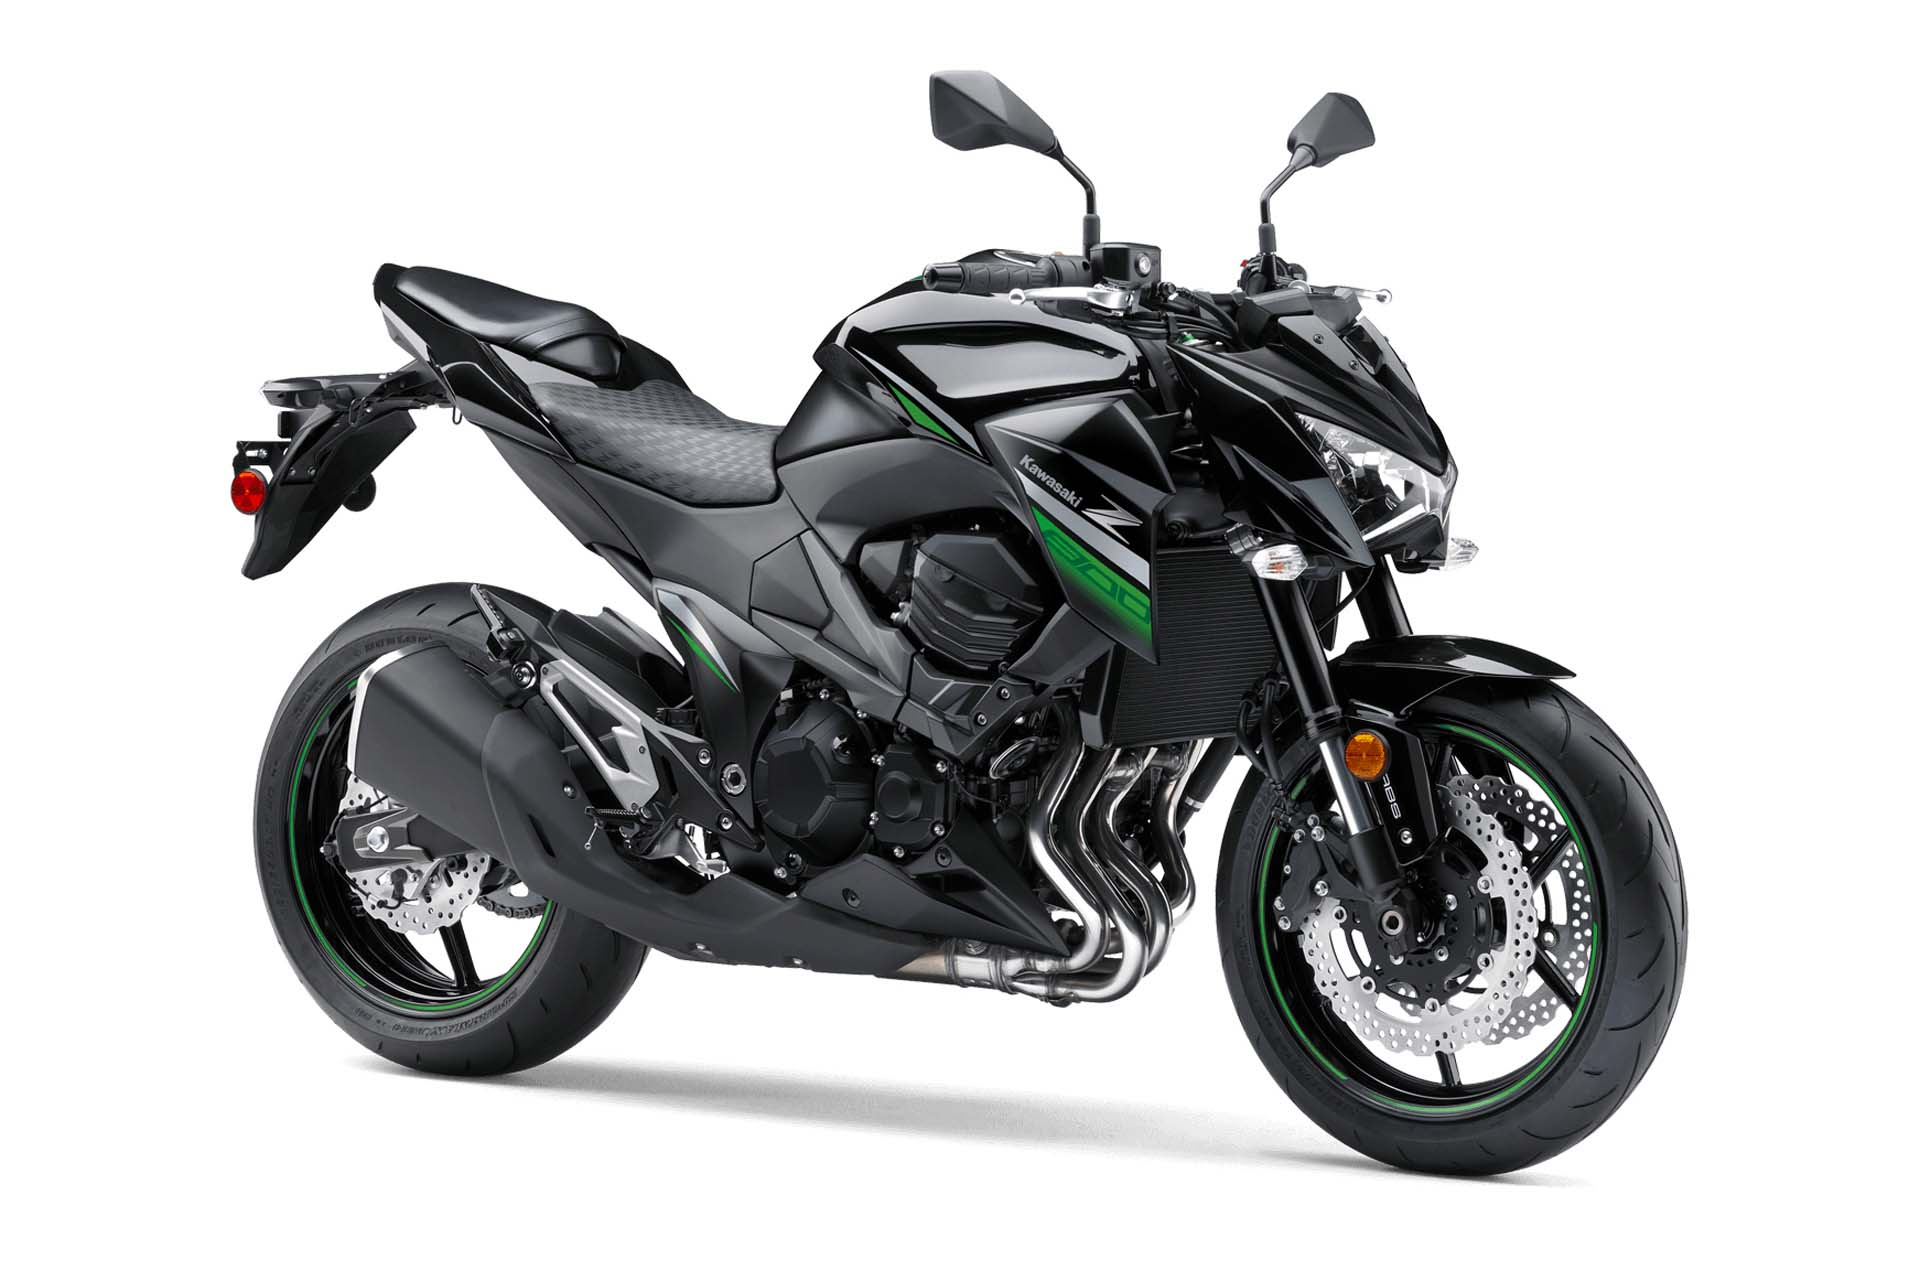 The latest Japanese make to bring a naked sport bike to North America, Kawasaki gives us the Z800, well priced, well powered and just plain good looking. Standard luggage hooks, low flat handlebars and a punchy 806 cc engine make this an entertaining commuter bike.